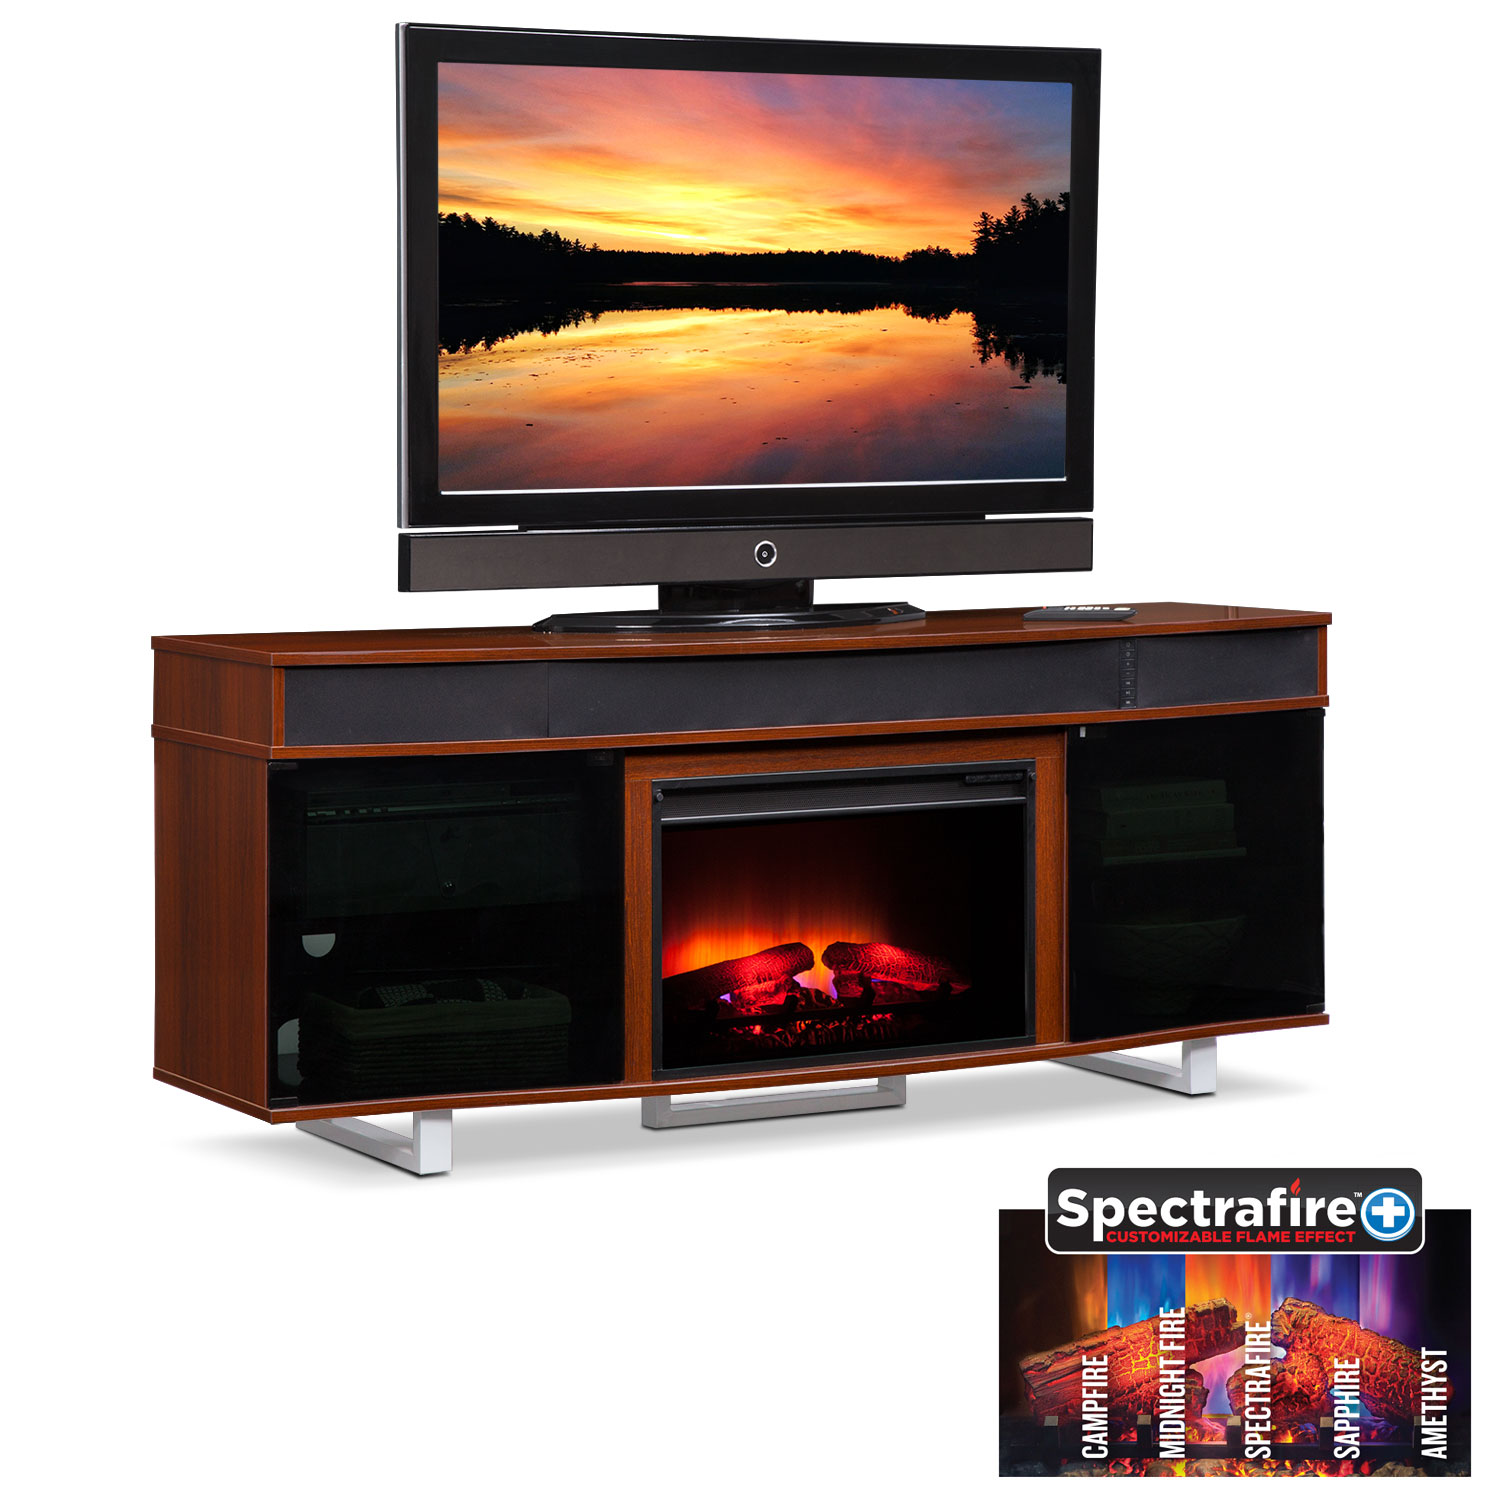 "Pacer 72"" Traditional Fireplace TV Stand with Sound Bar - Cherry"